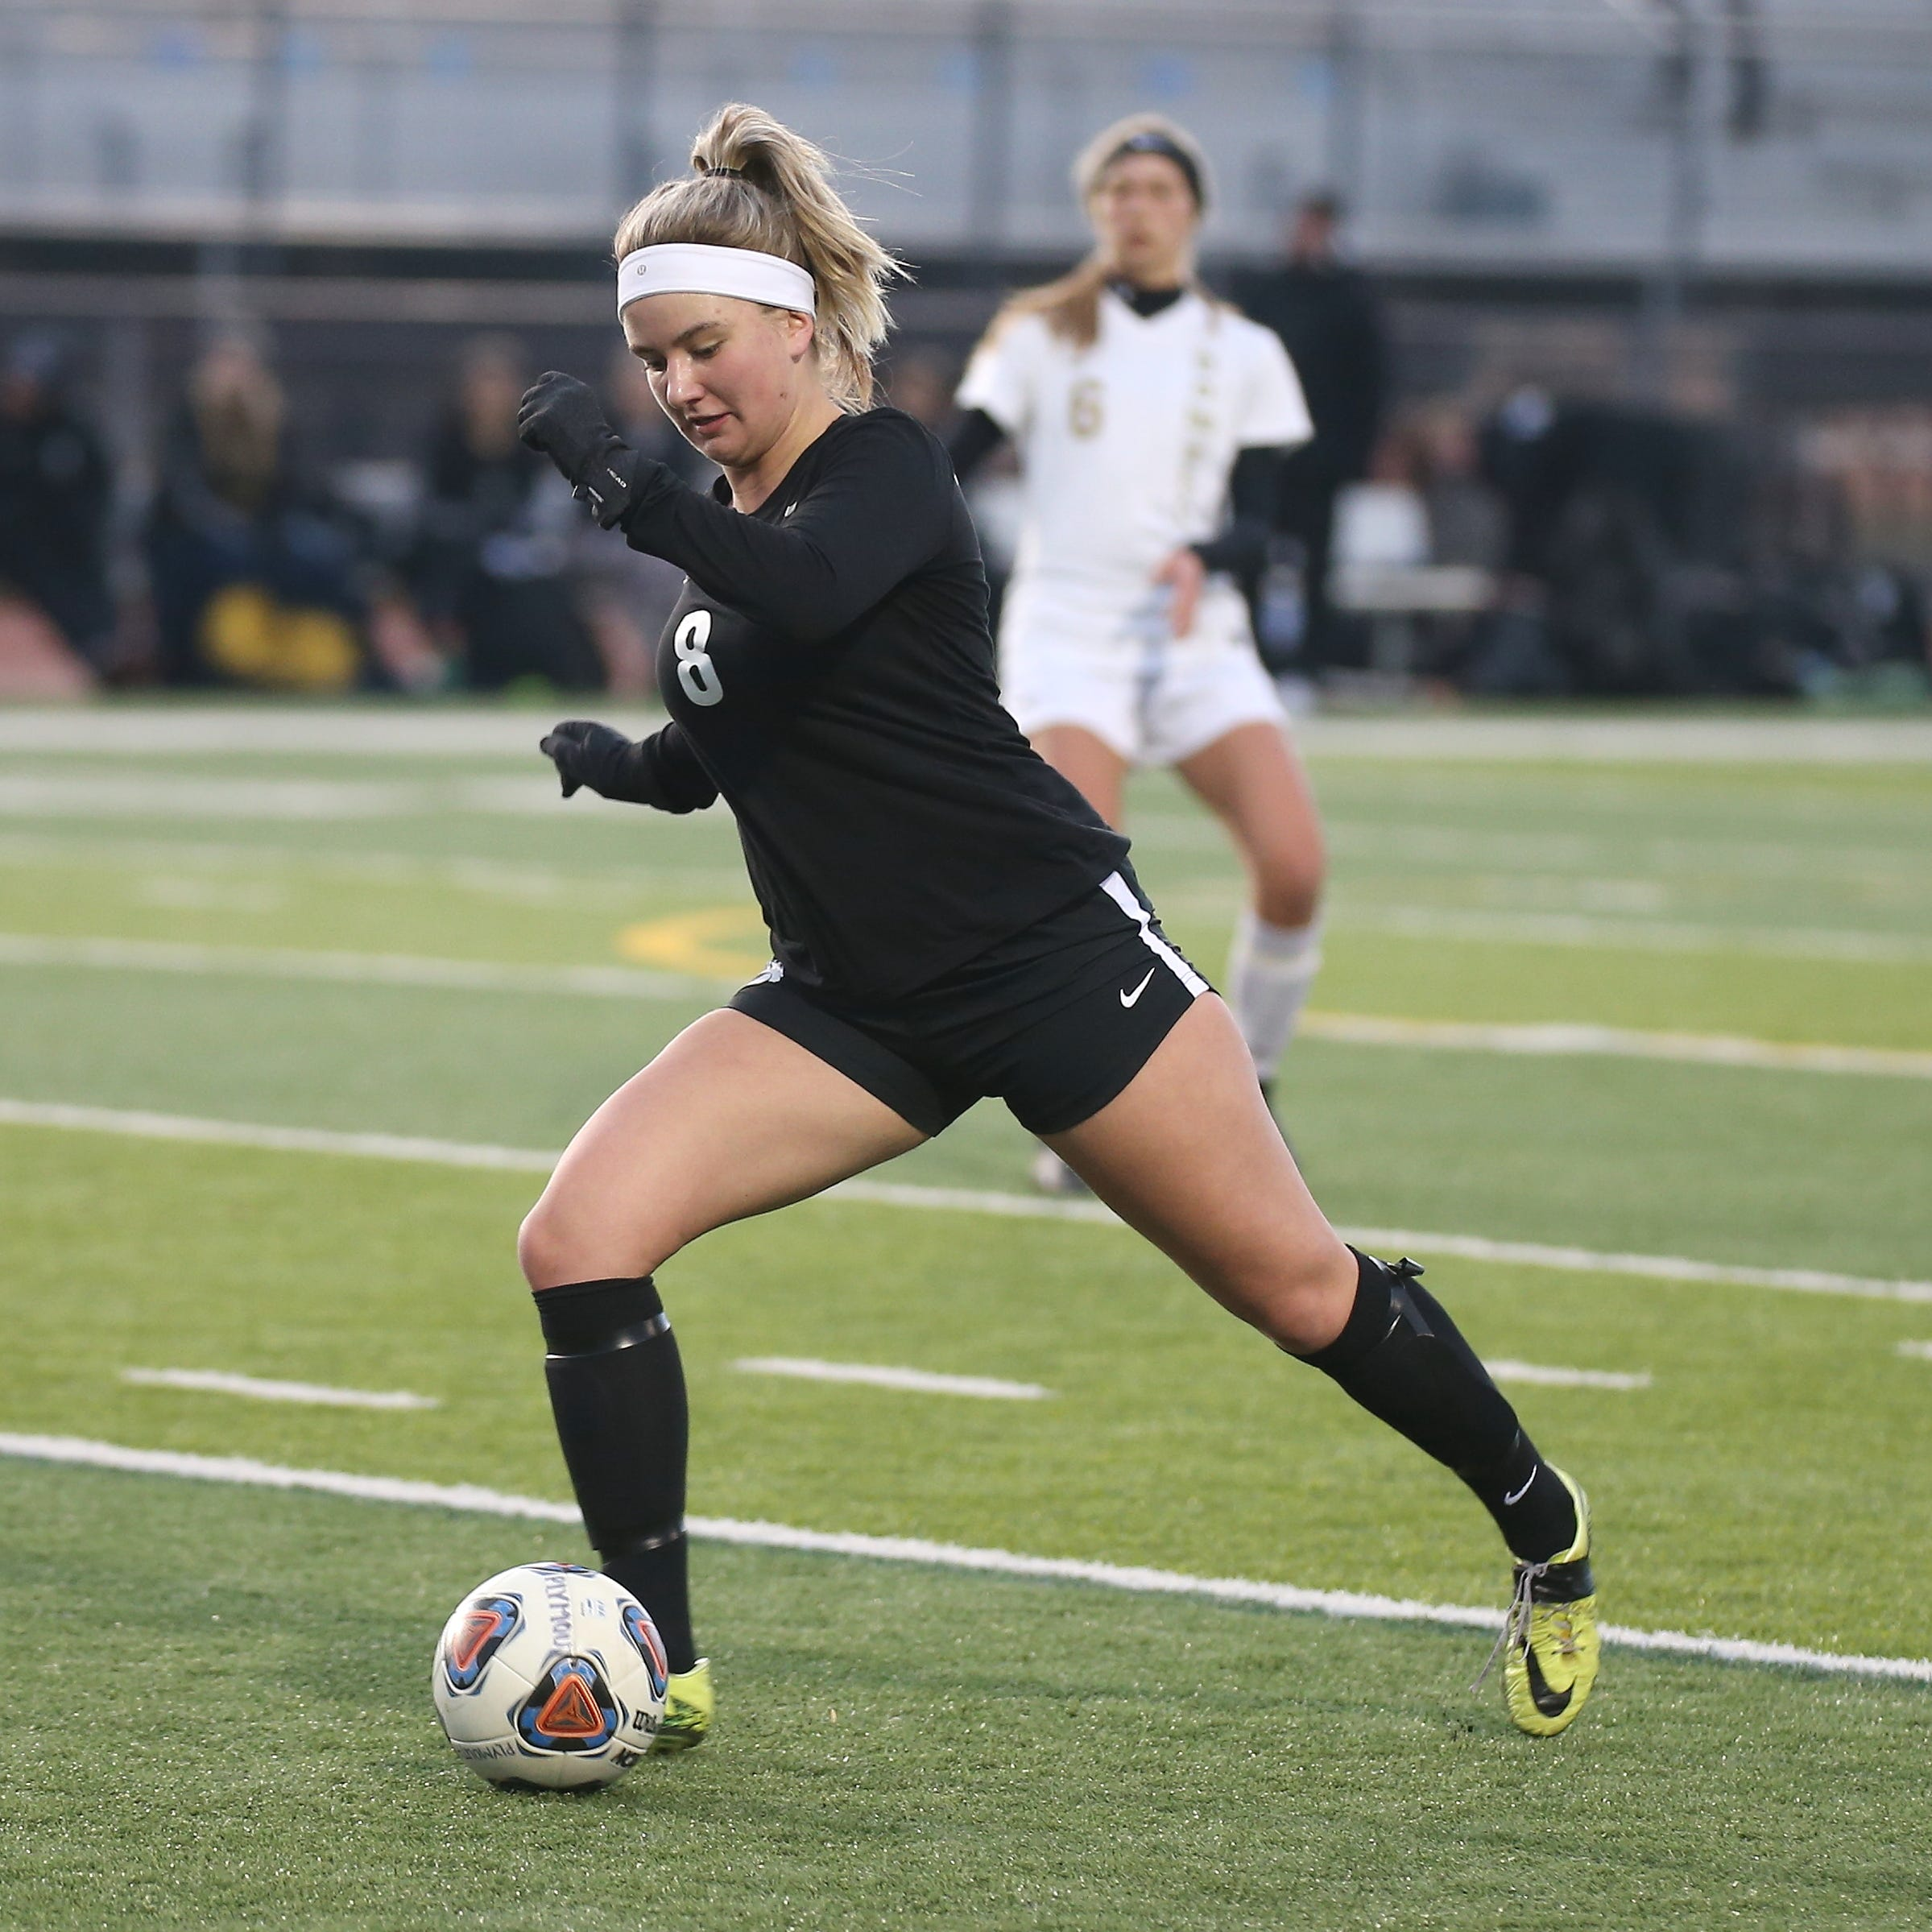 Girls Soccer Scoreboard: Livonia, South Lyon and Plymouth teams start season strong